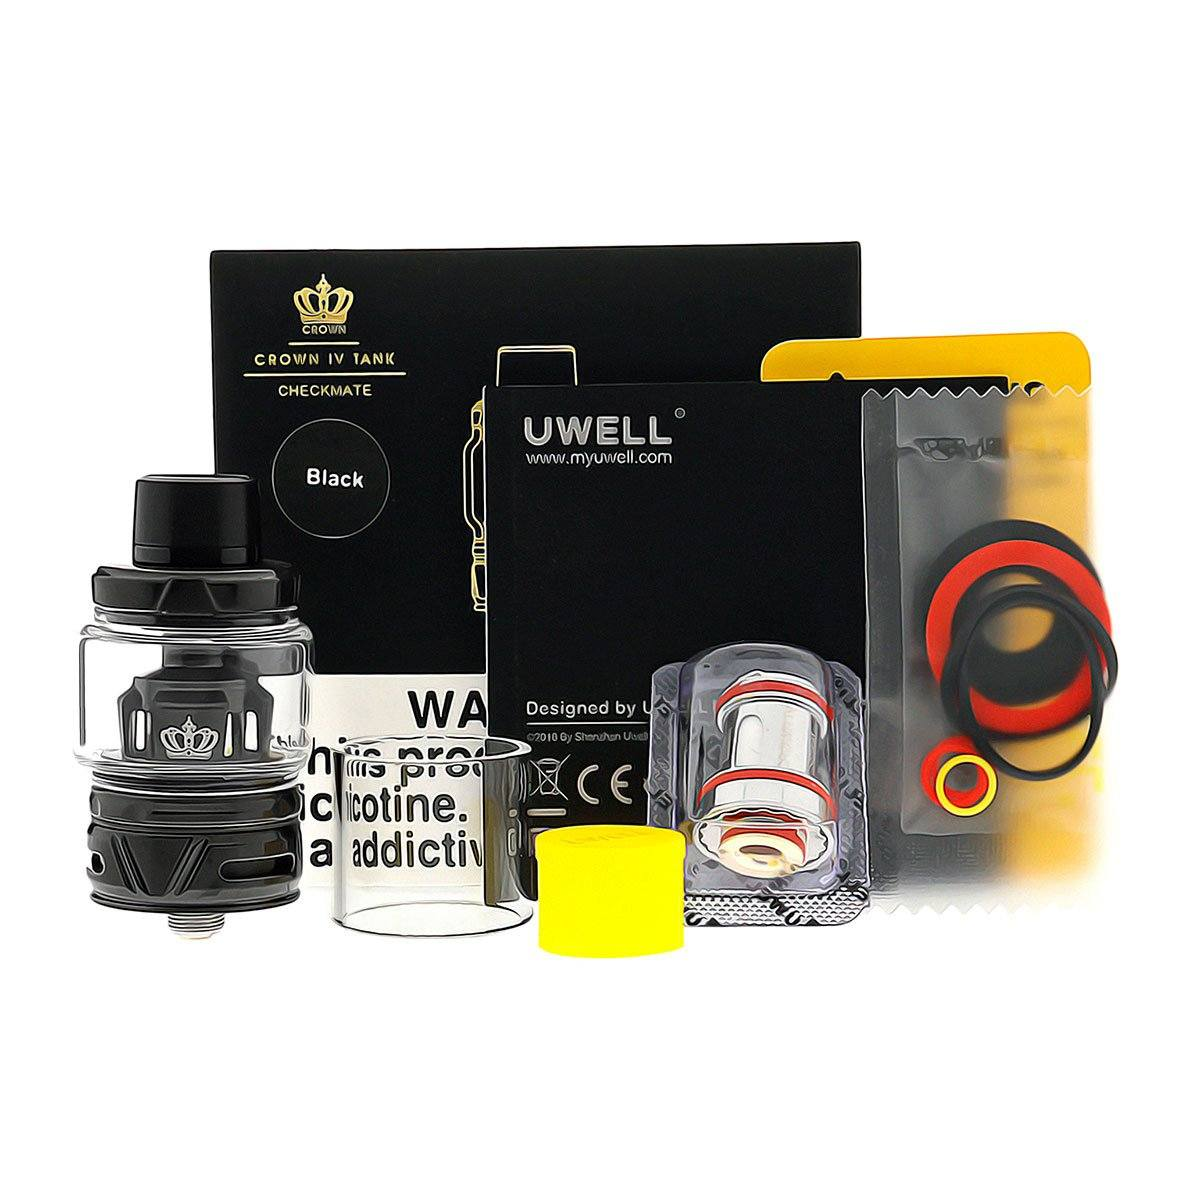 Uwell Crown 4 Sub-Ohm Tank Package Contents